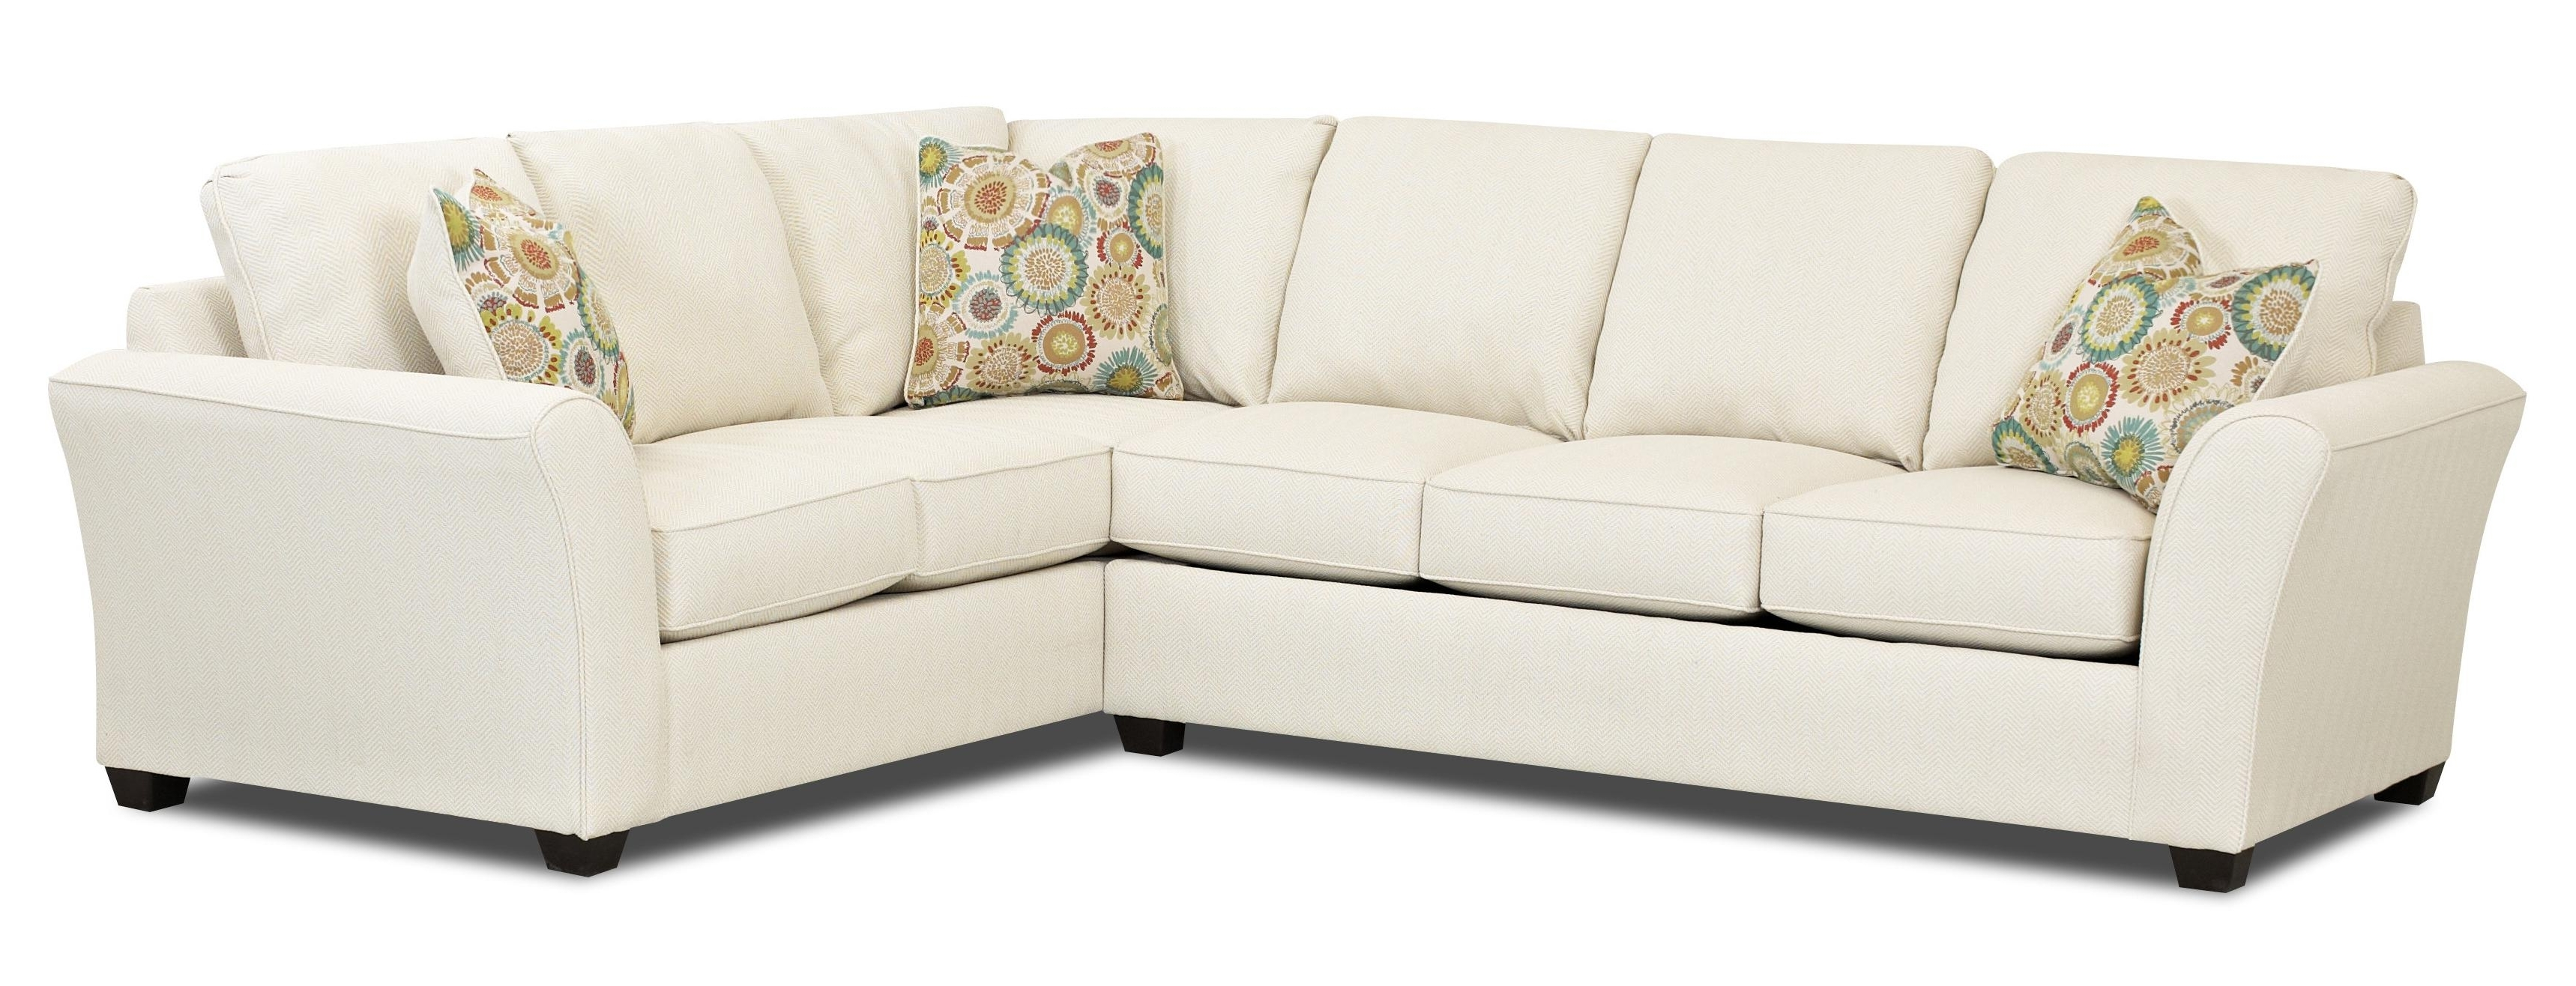 L Shaped Sectional Sleeper Sofas Regarding Current Transitional Sectional Sleeper Sofa With Dreamquest Mattress (View 8 of 15)